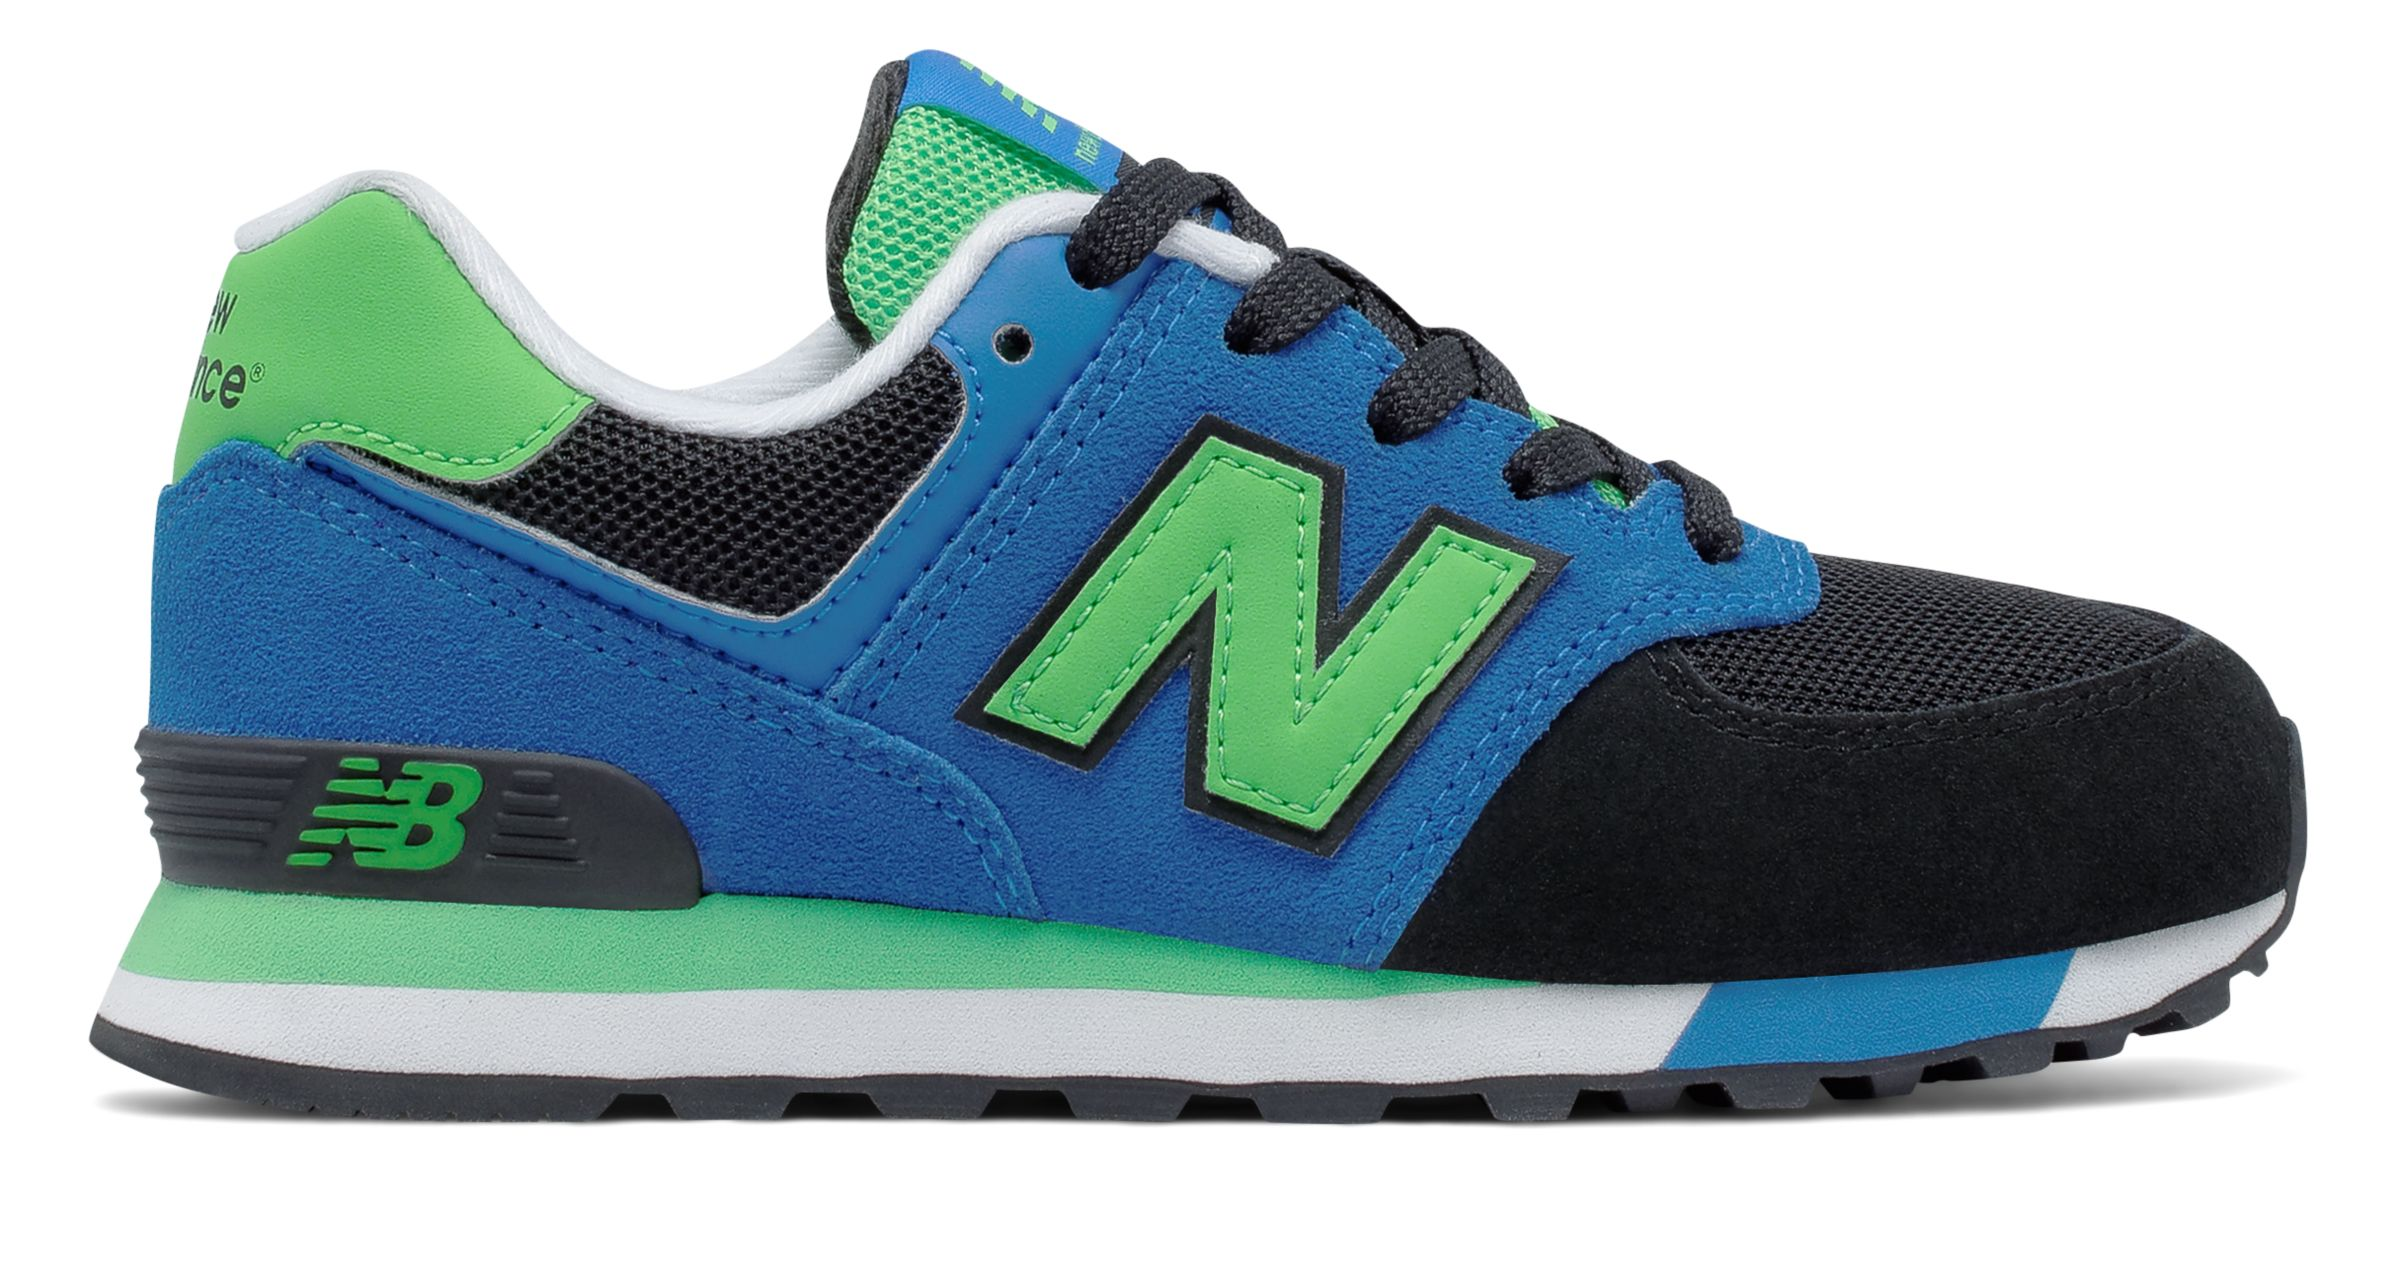 NB 574 Cut and Paste, Black with Blue & Acidic Green